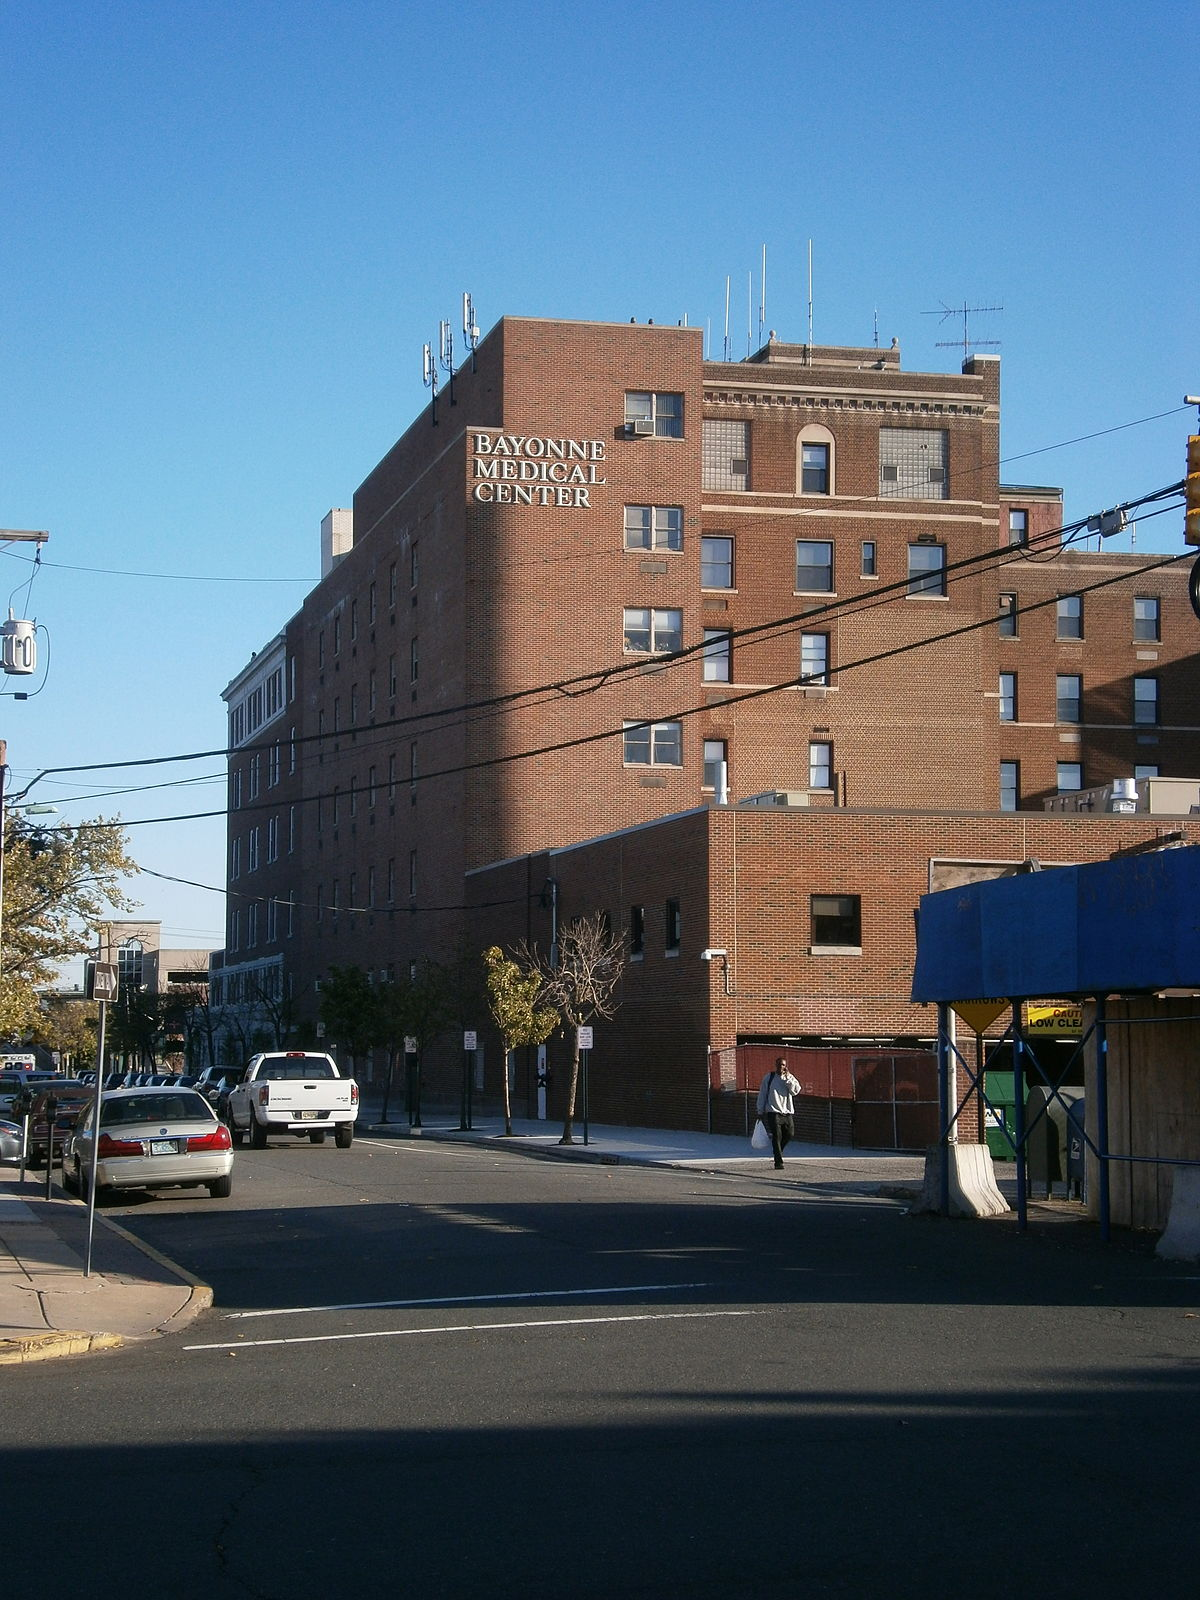 Bayonne Medical Center Wikipedia